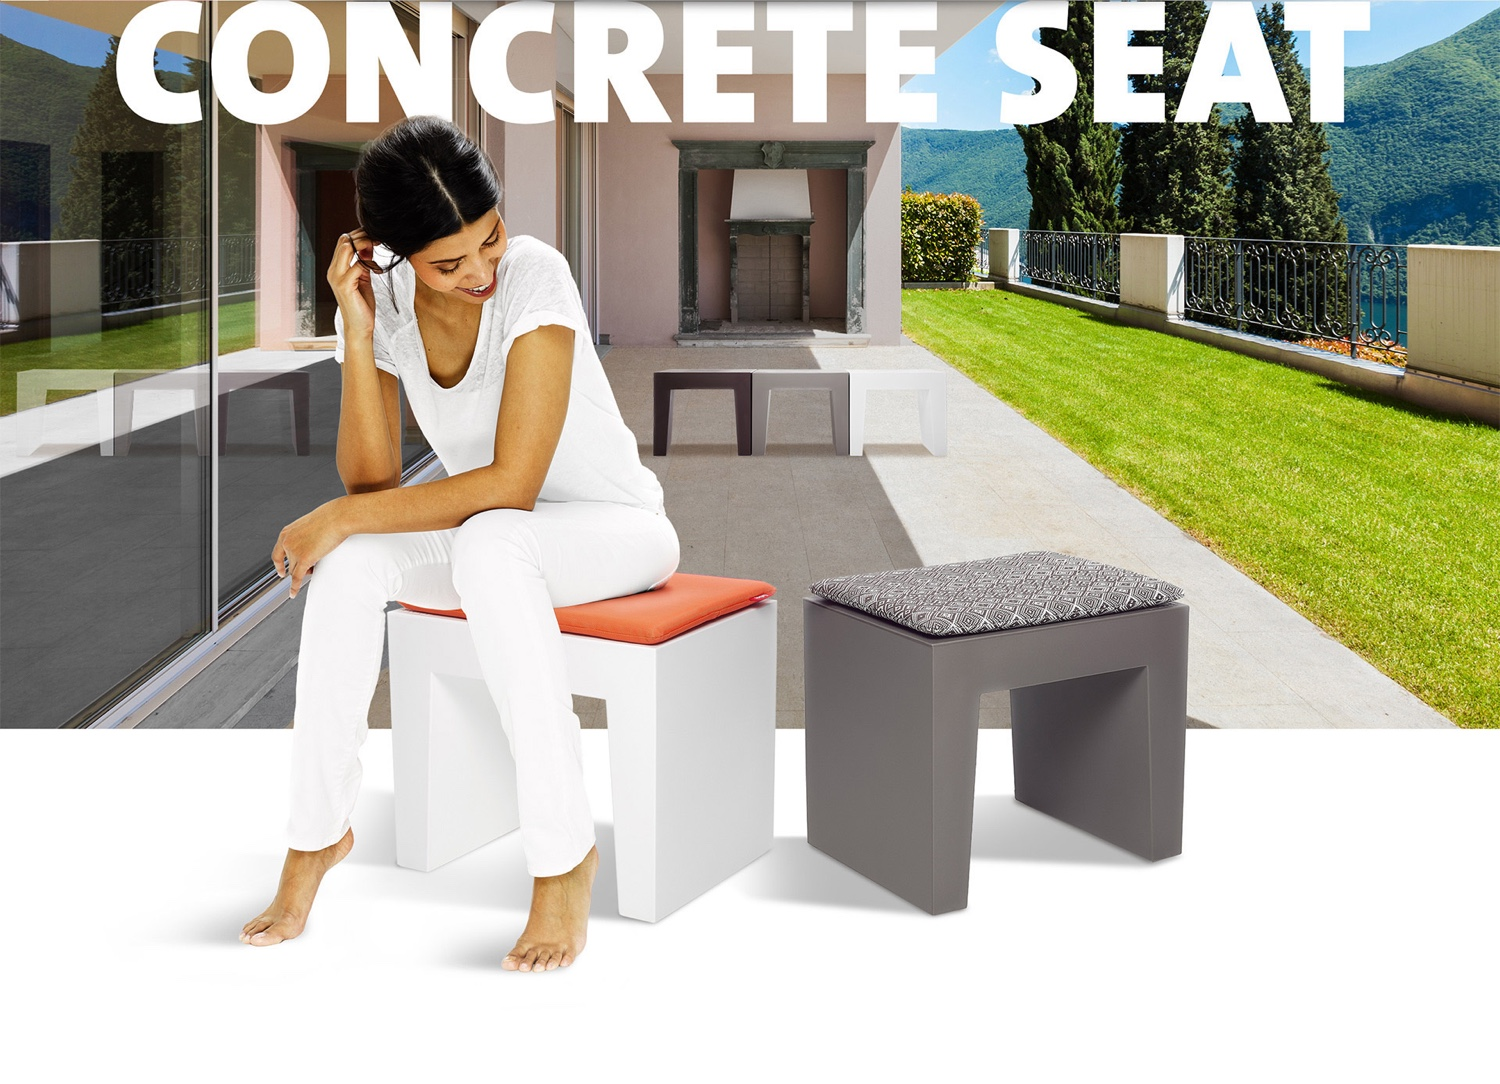 Concrete Seat by Fatboy. Image © Fatboy.